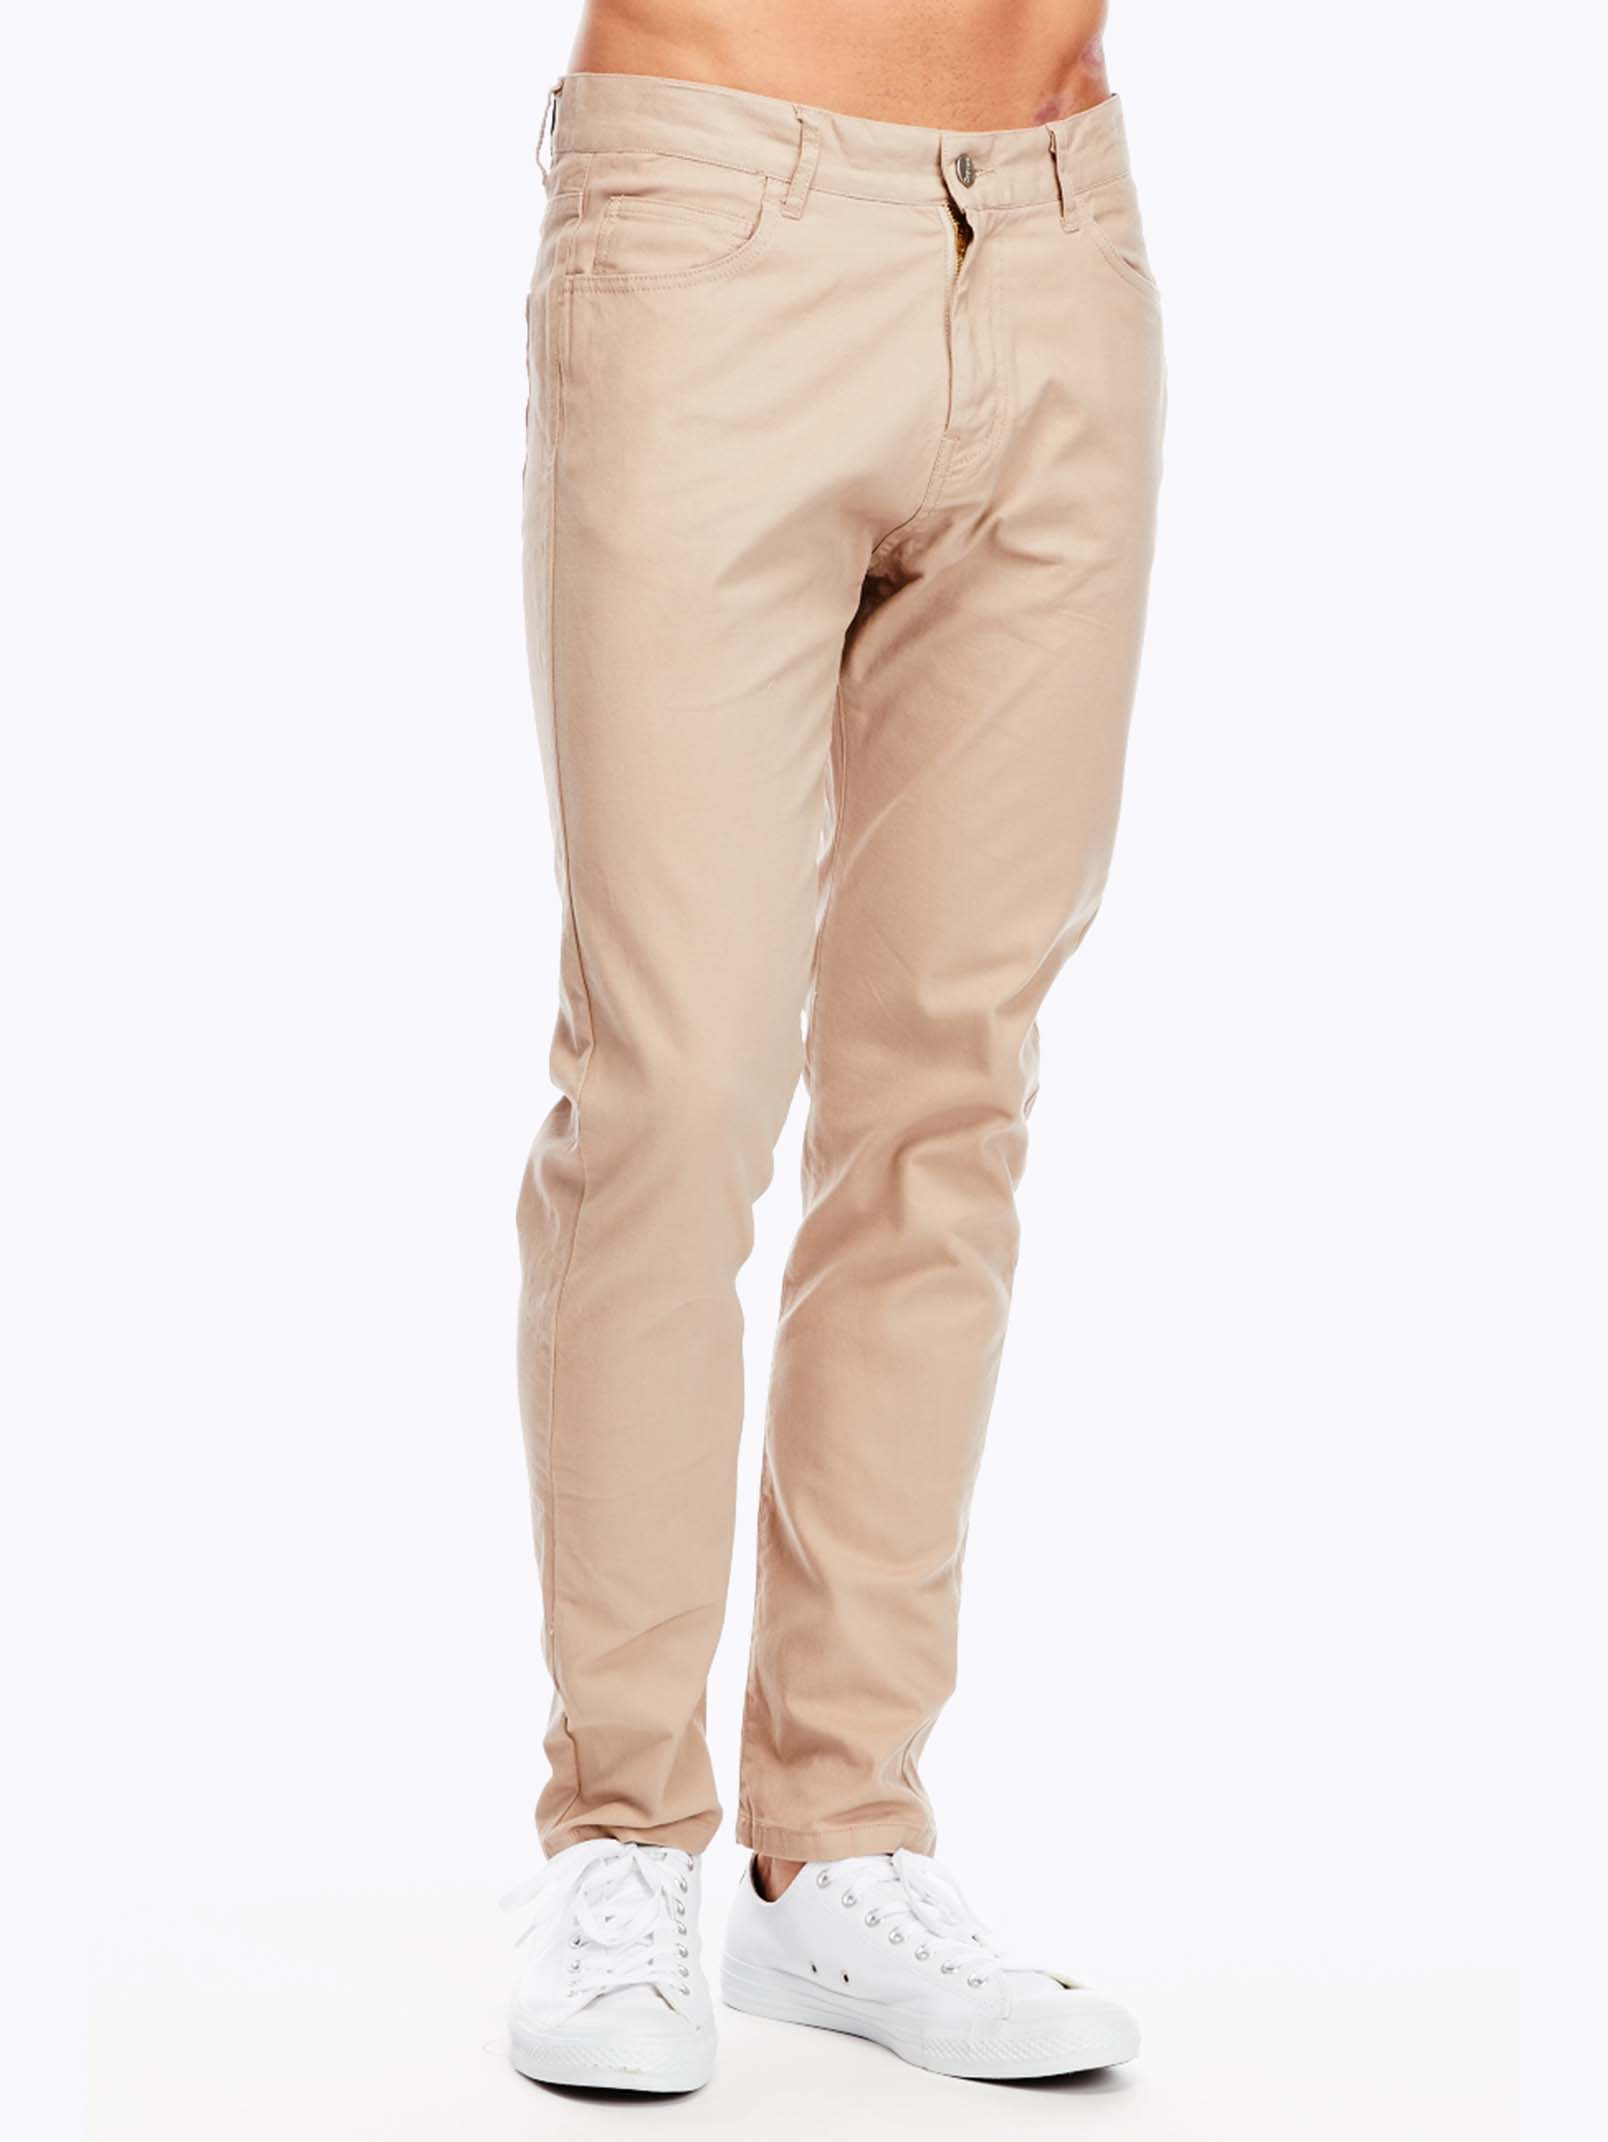 Buy Dockers Men's Easy Khaki Slim Tapered Fit Pants and other Casual at bestkapper.tk Our wide selection is elegible for free shipping and free returns.